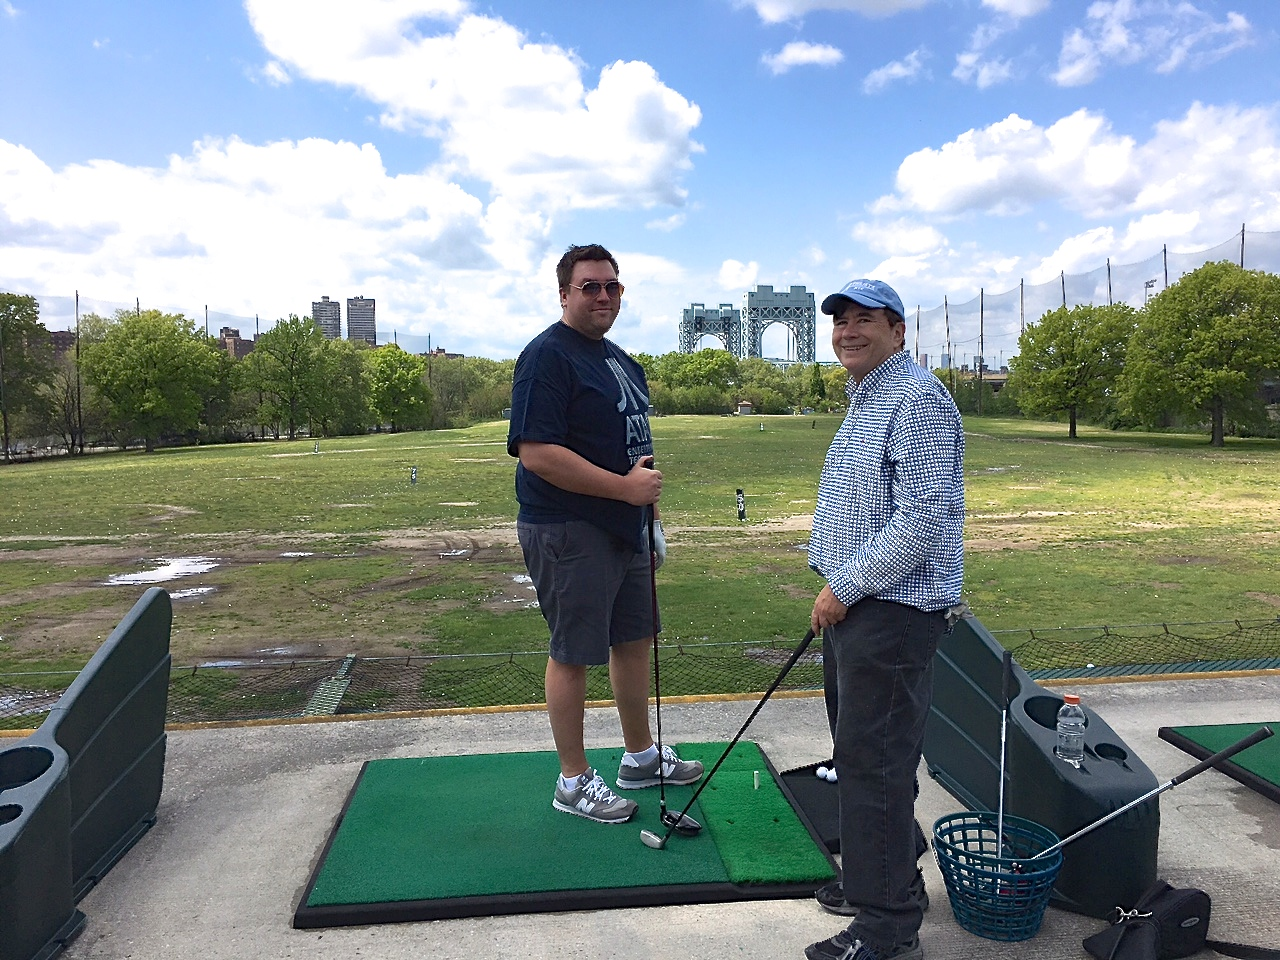 Greg & John, Mother's Day, 2017, Randall's Island golf